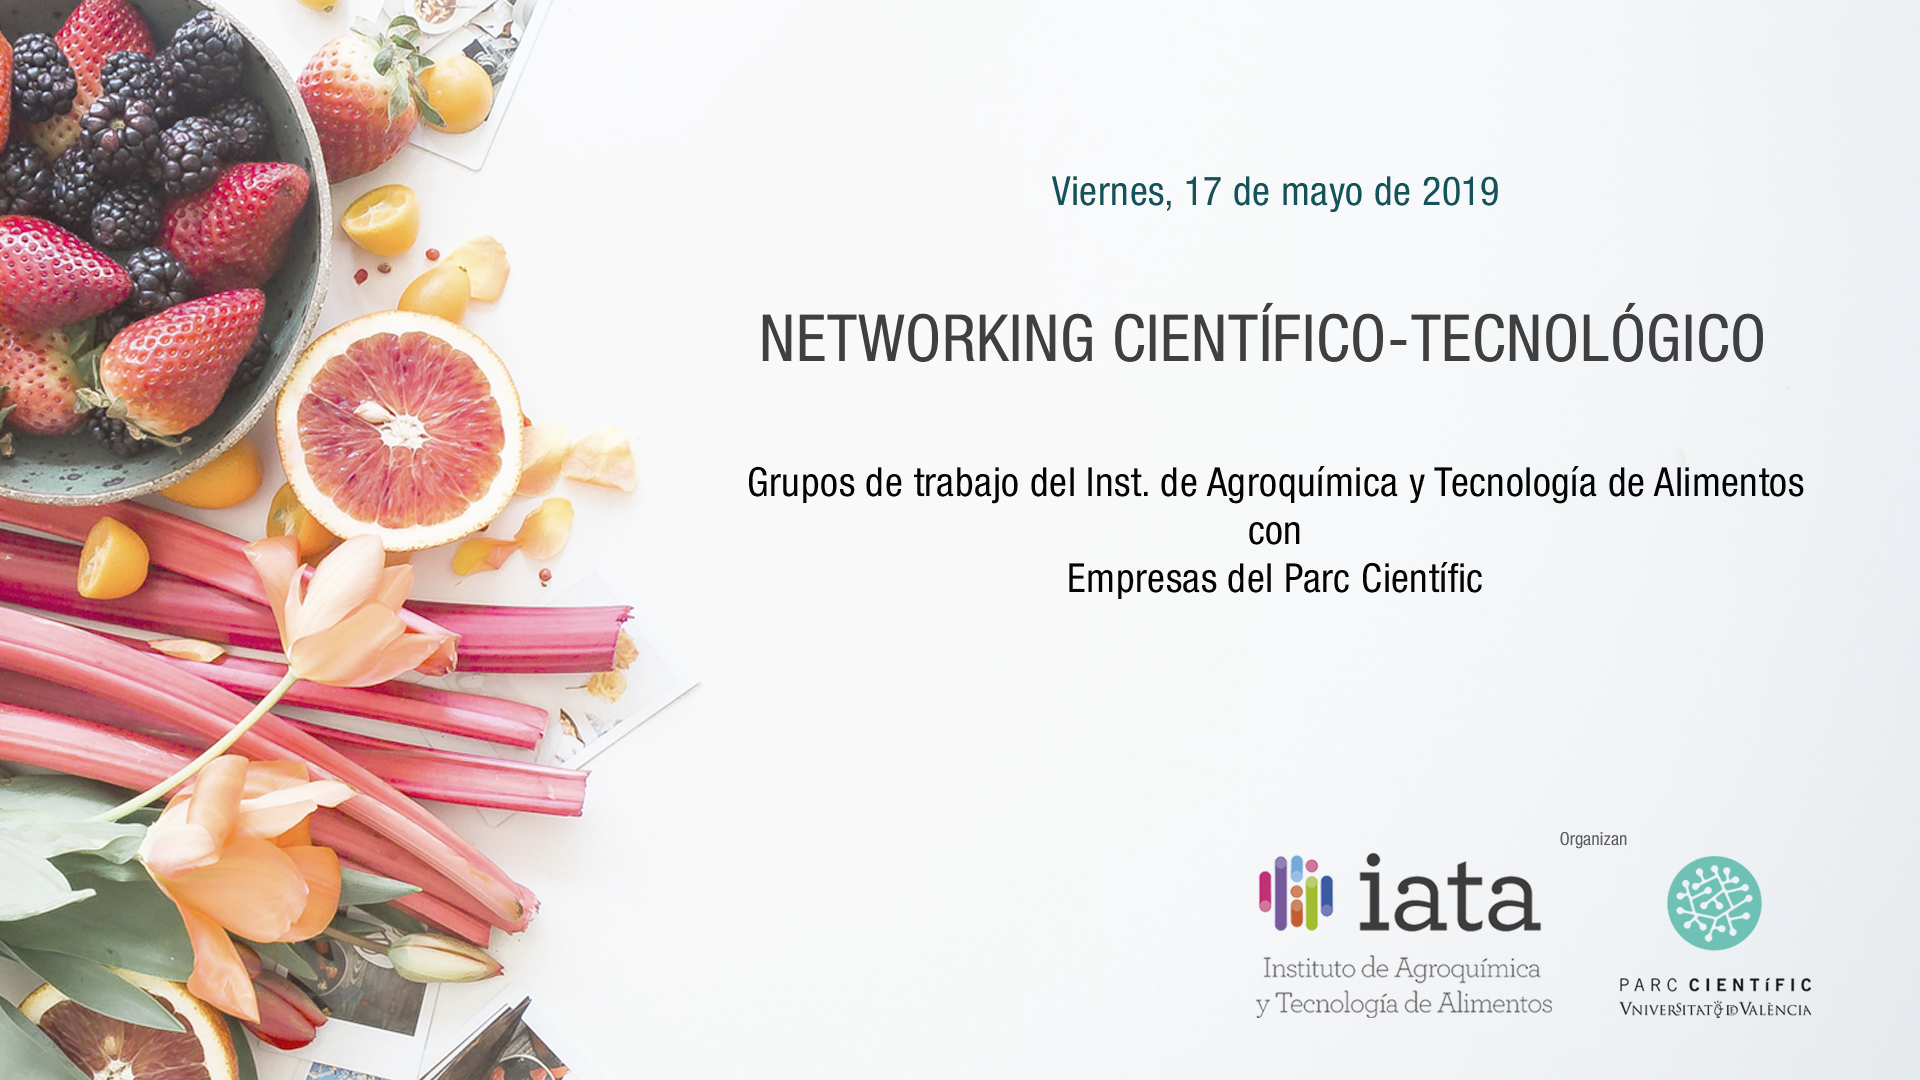 Networking between IATA and the companies of the Science Park